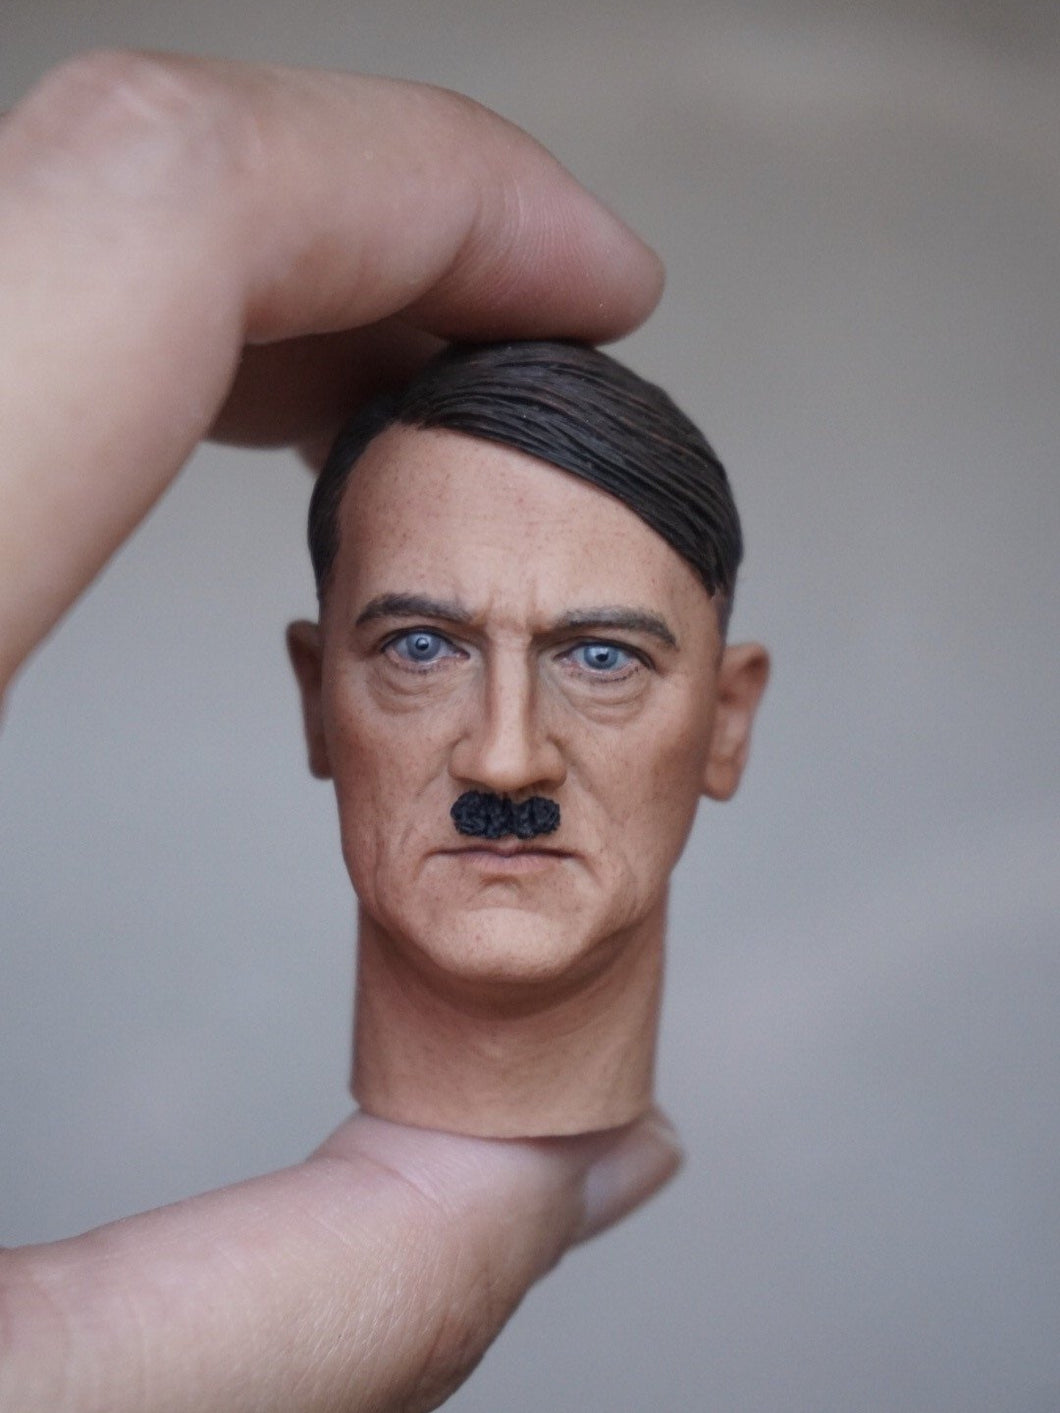 1/6 head sculpt for WW2 general for 12'' action figure